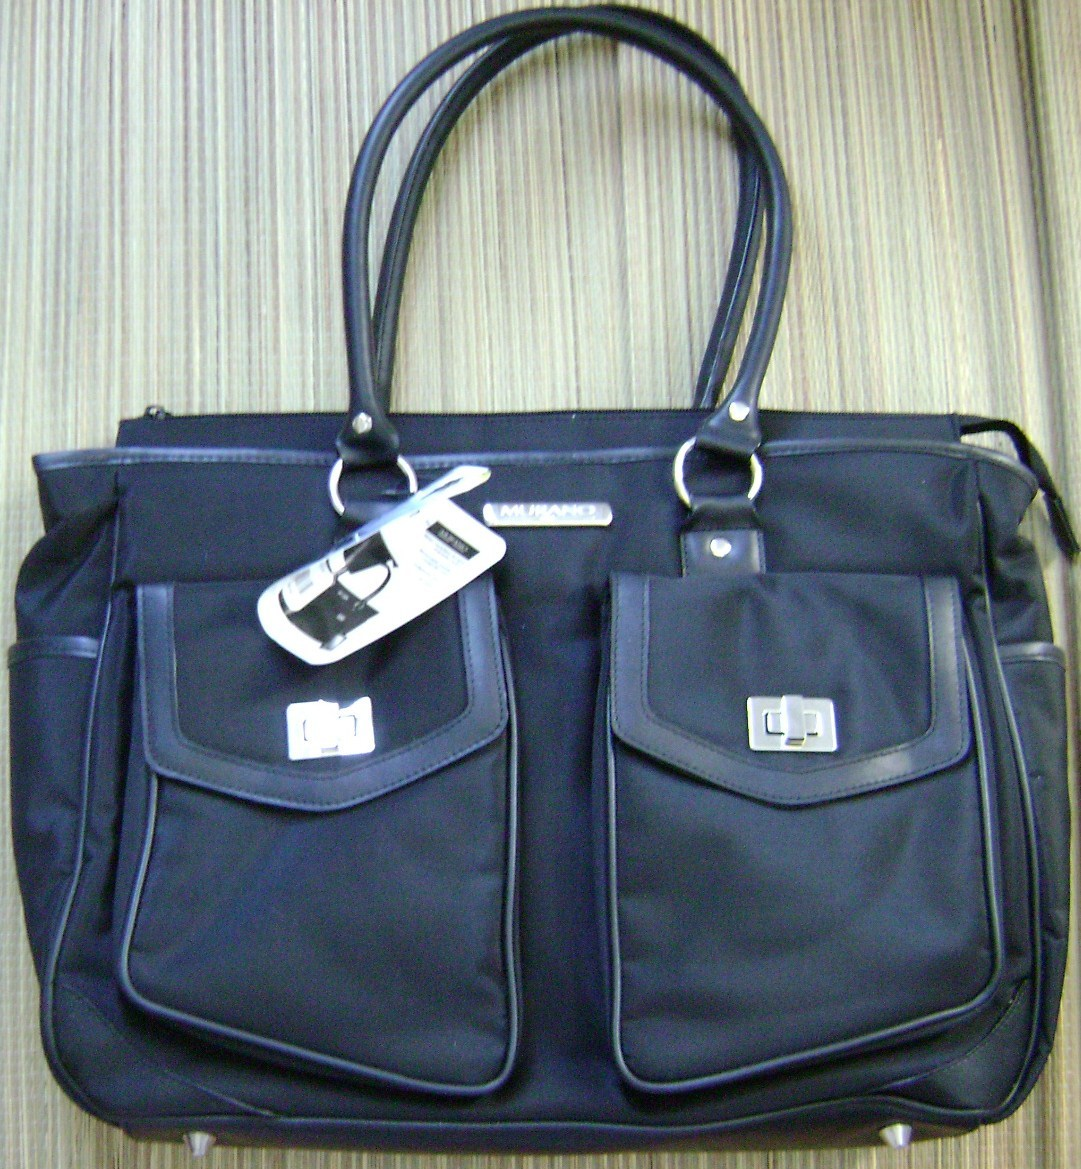 Primary image for MURANO ULTRA TRAVEL TOTE WITH REMOVABLE COMPUTER SLEEVE/ATTACHMENTS BLACK NEW